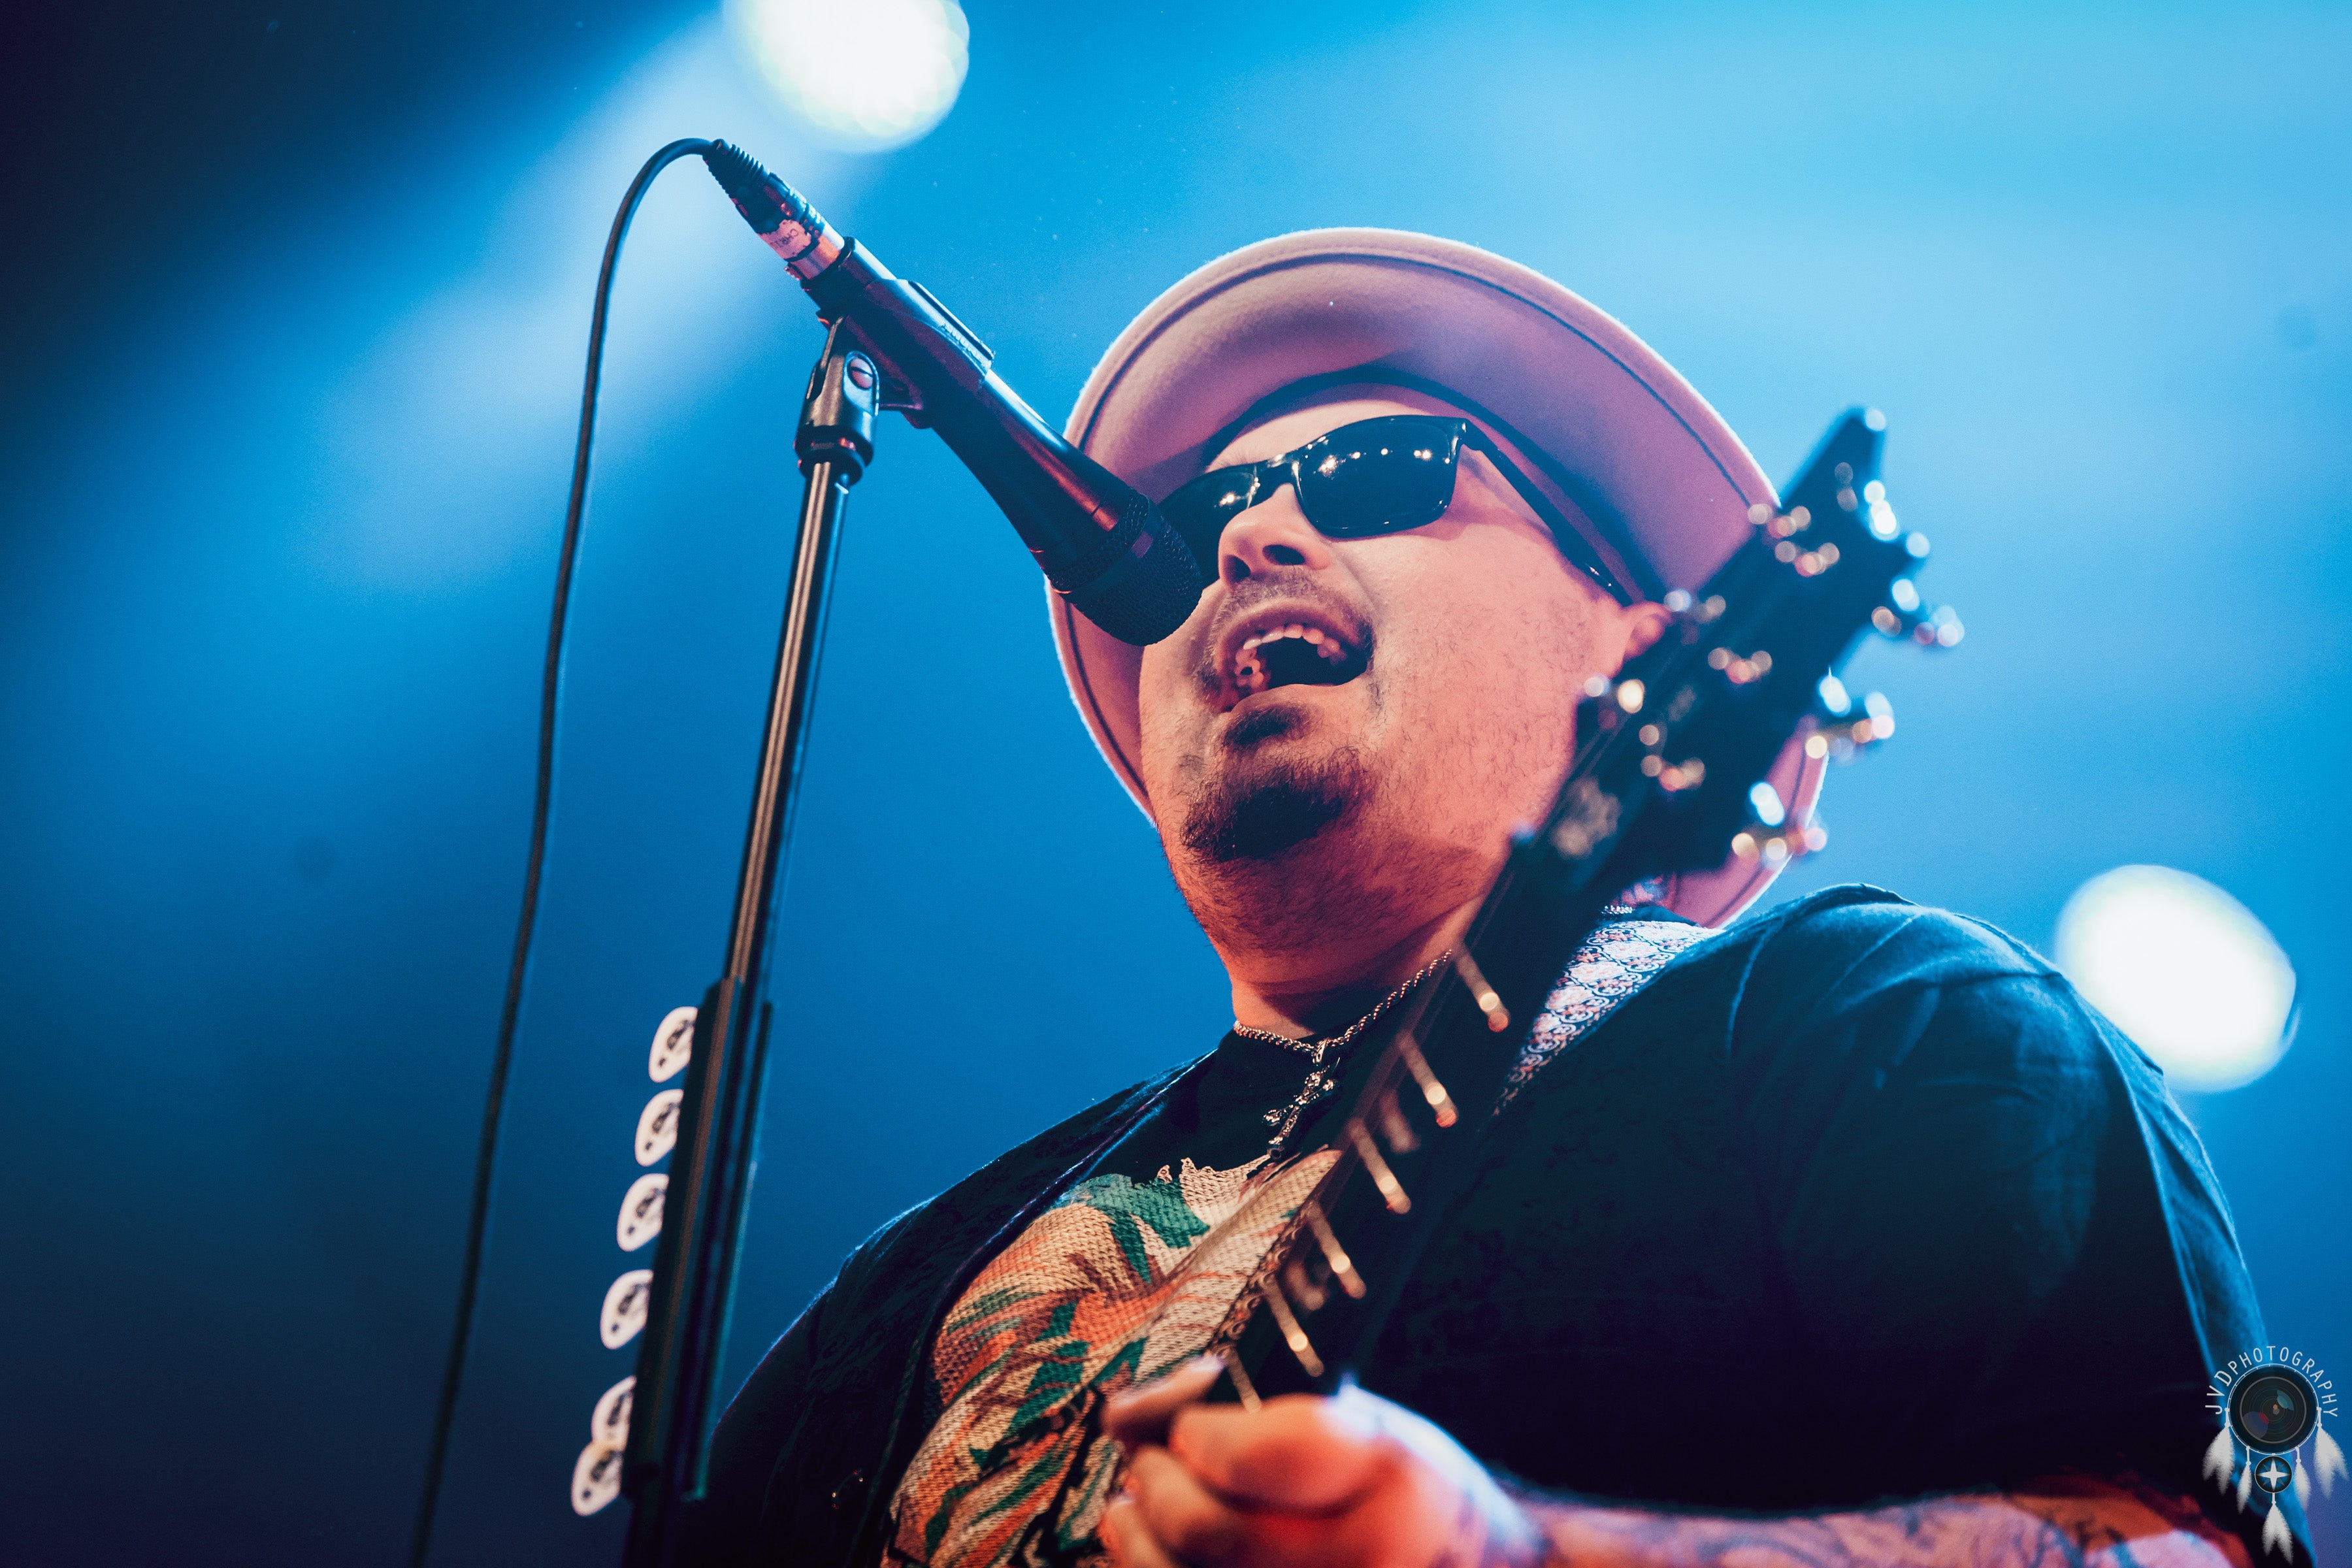 Black Stone Cherry Have Arrived In Europe And Their Shows Look EPIC! Take A Look...